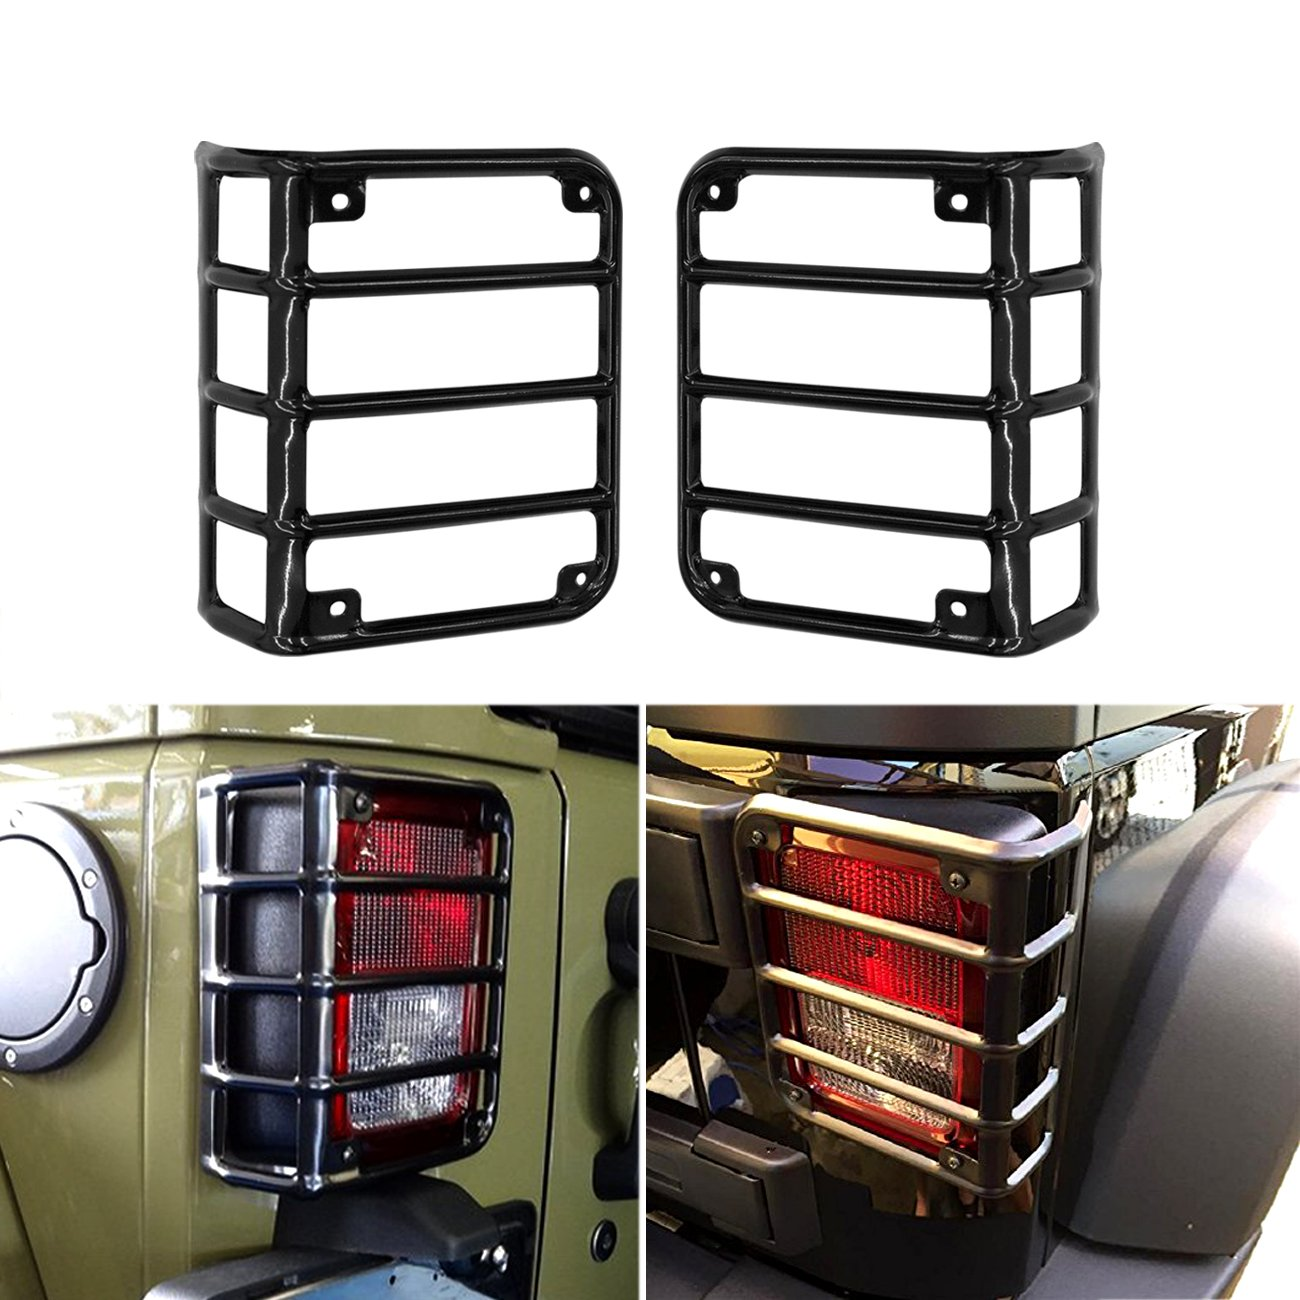 DIYTuning Euro Tail lamp light Cover Trim Guards Protector for Jeep Wrangler JK JKU Unlimited Rubicon Sahara Sport Exterior Accessories Parts 2007 2008 2009 2010 2011 2012 2013 2014 2015 2016 2017 DIYMaker